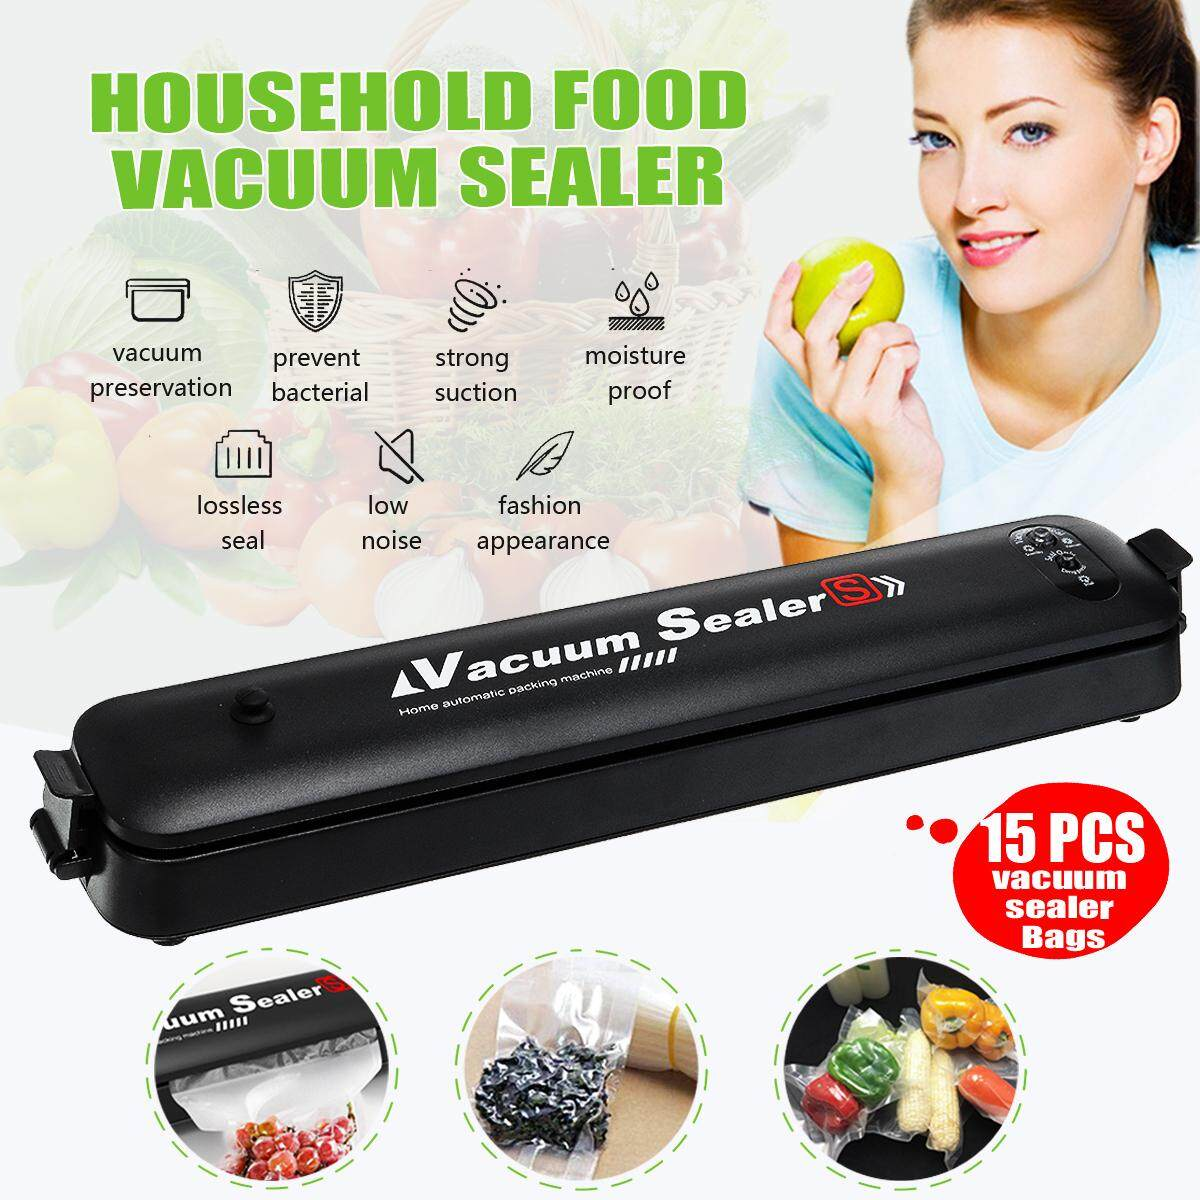 Automatic Vacuum Sealer Saver Food Packing Sealing Machine W/ 15pcs Storage Bag 90w Ac 110v-120v/60hz 220v-240v/50hz Us Plug By Ferry.